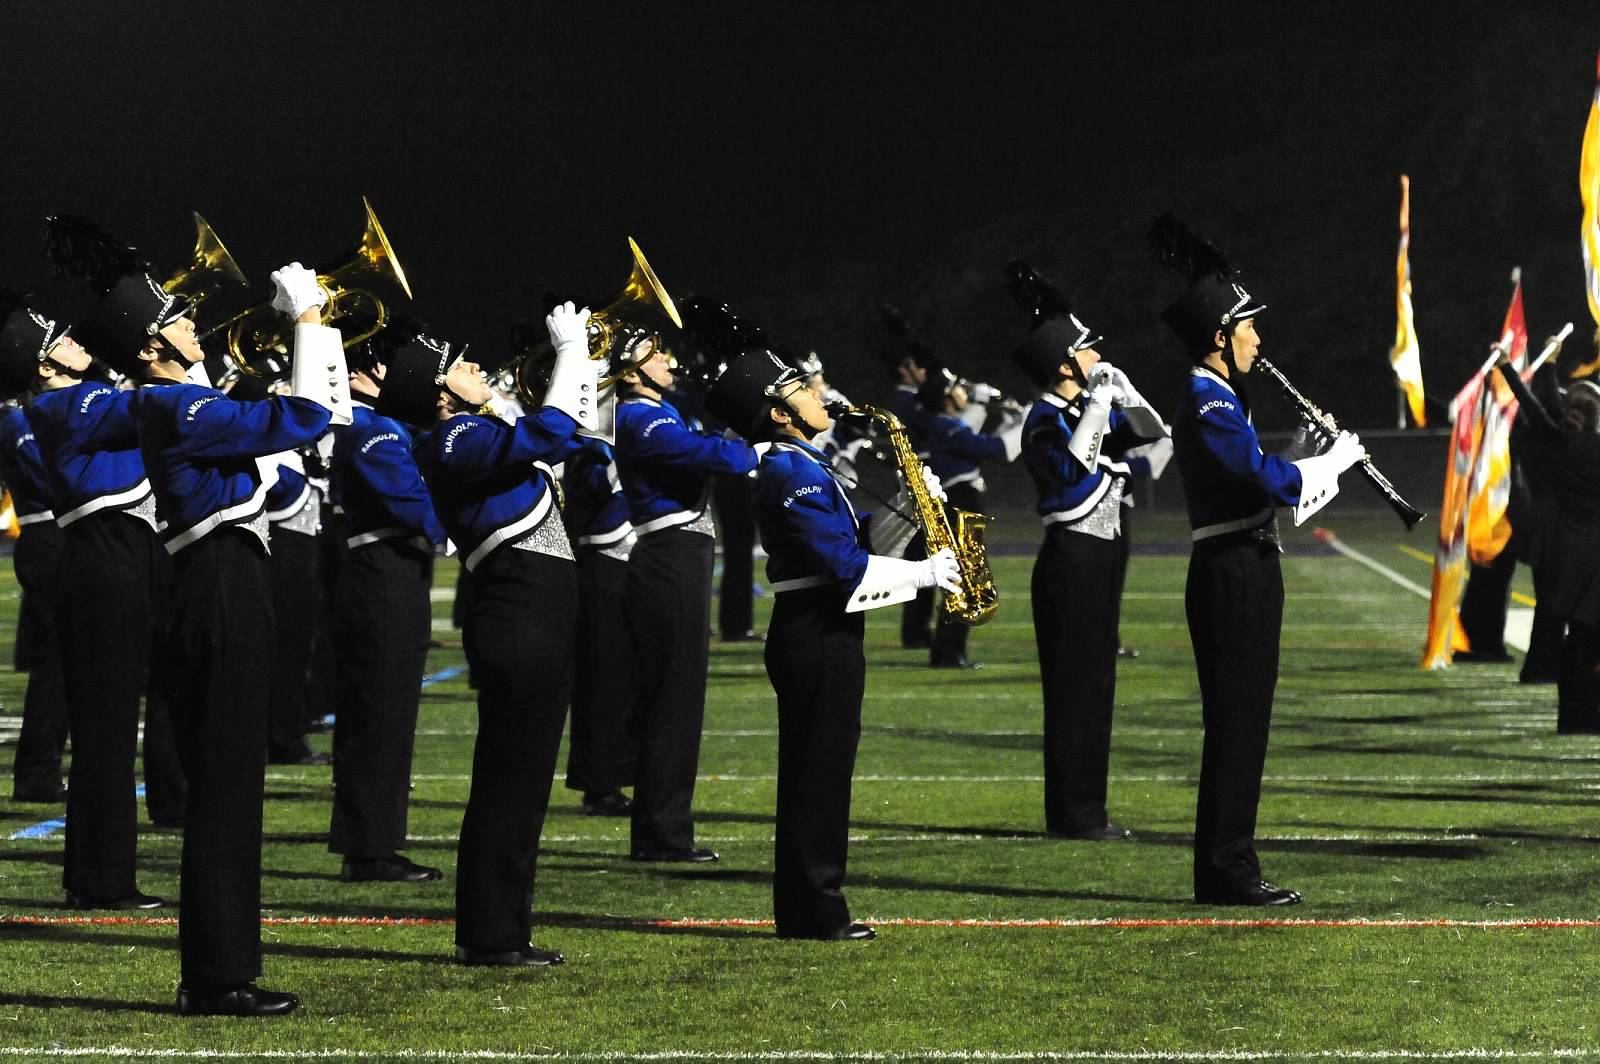 8fd2d1c7006e573a317e_UTS_2014_band_on_the_field.JPG